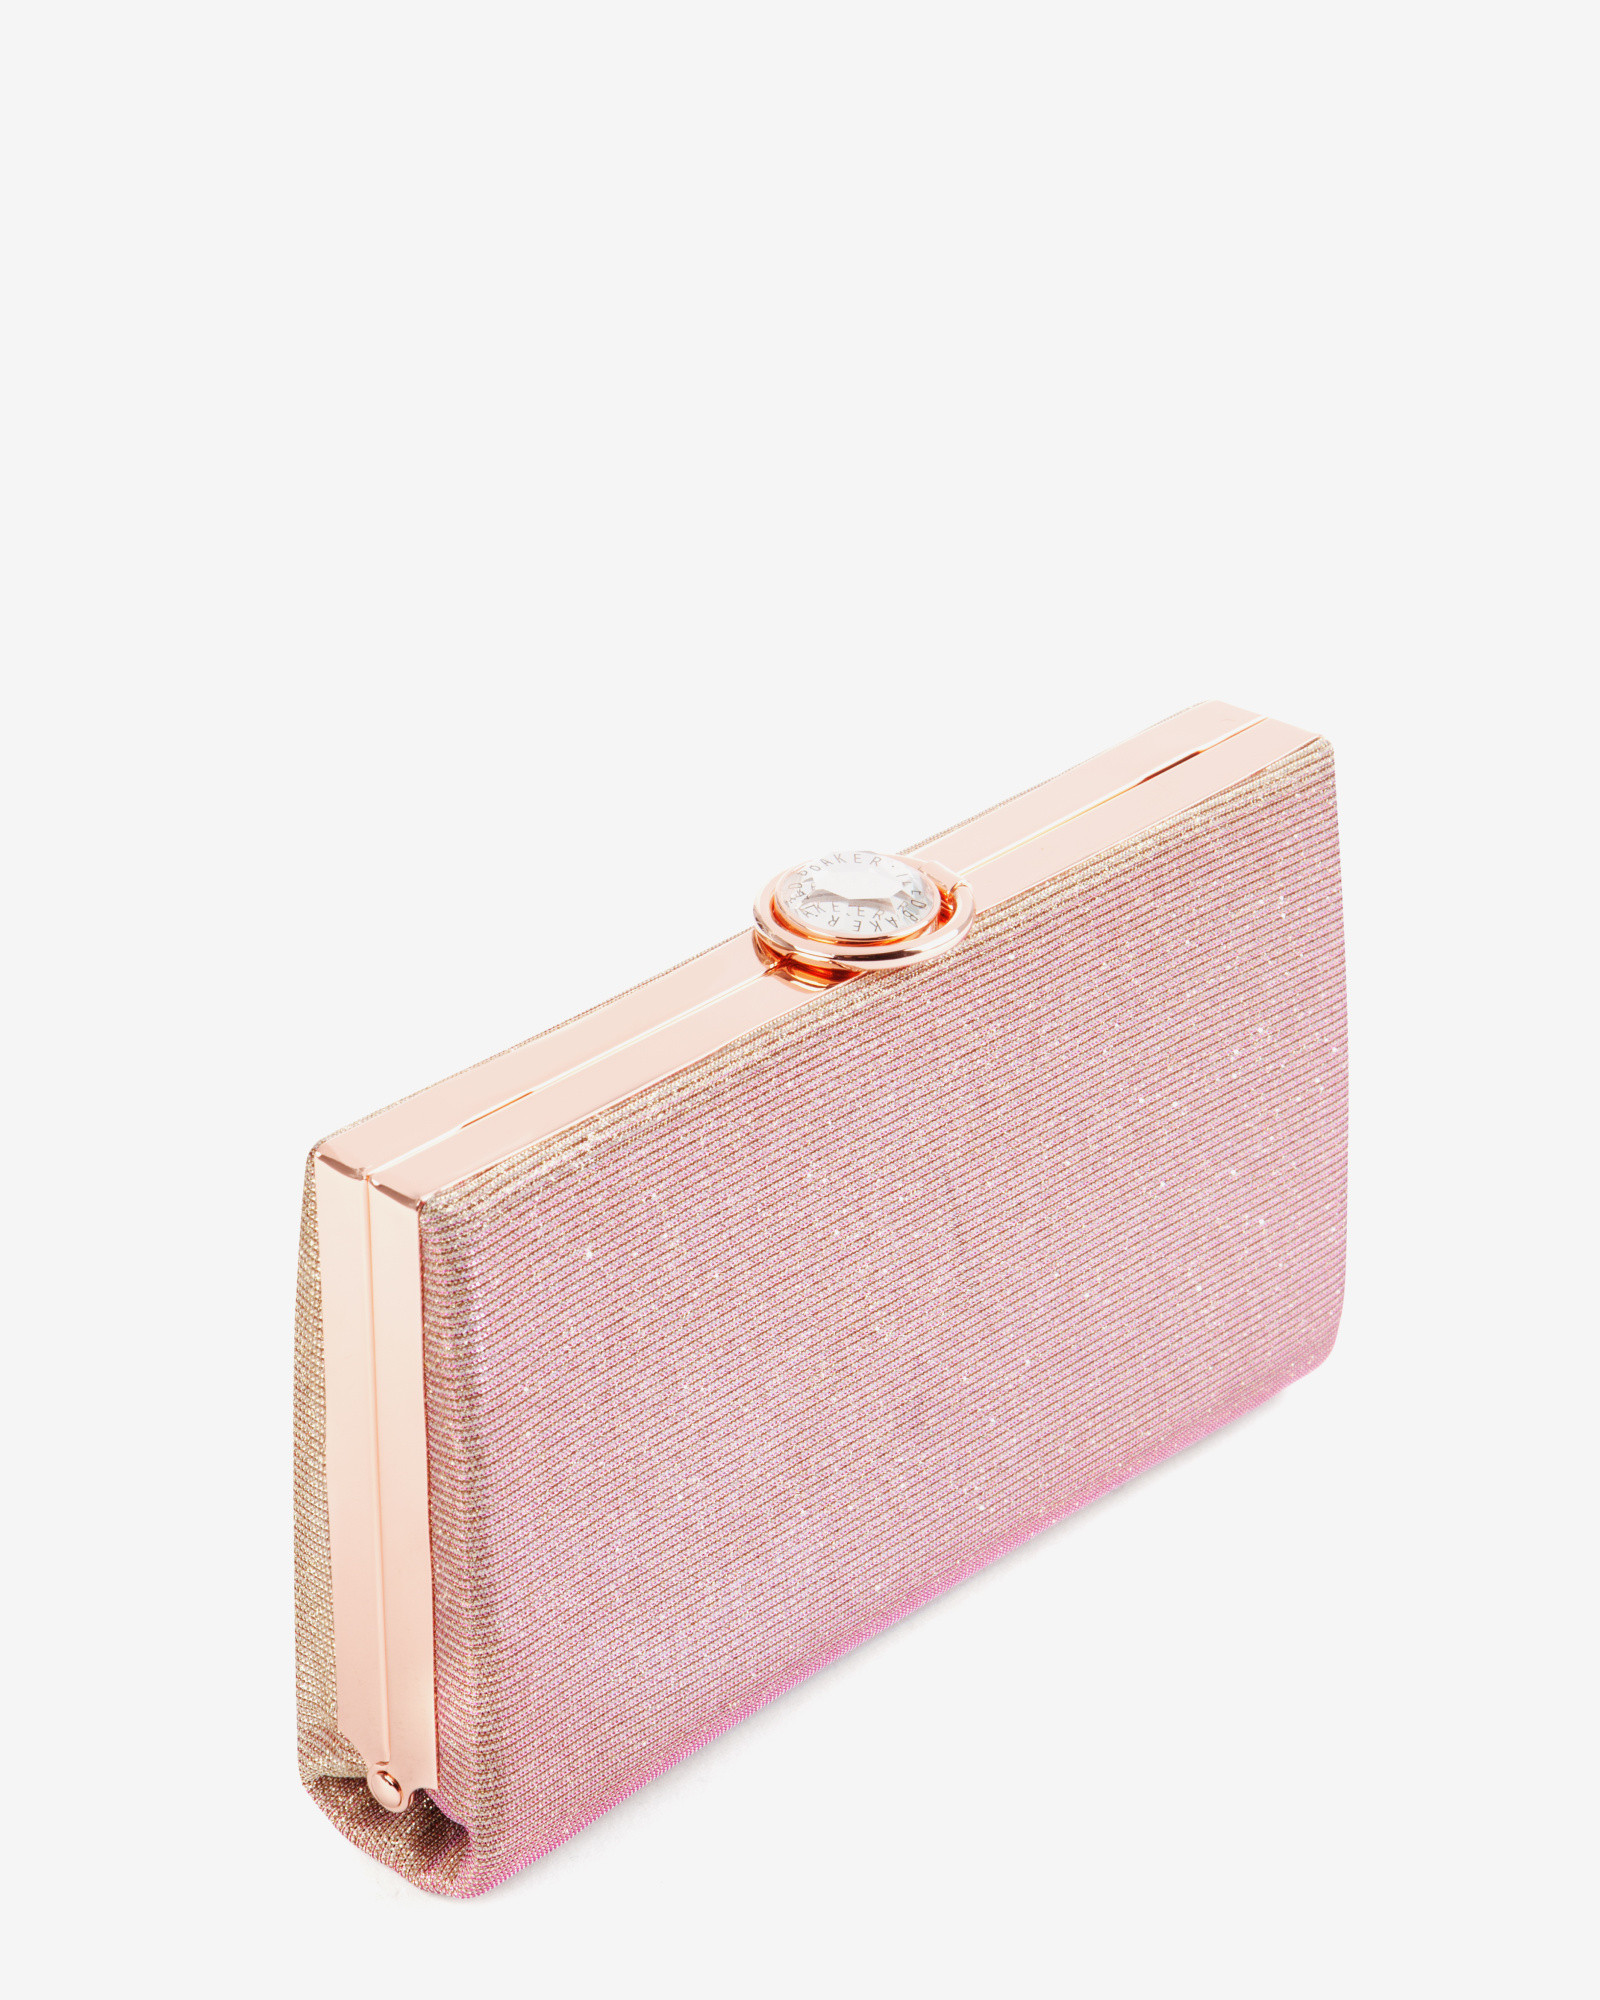 Ted baker Hard Case Glitter Clutch Bag in Pink | Lyst